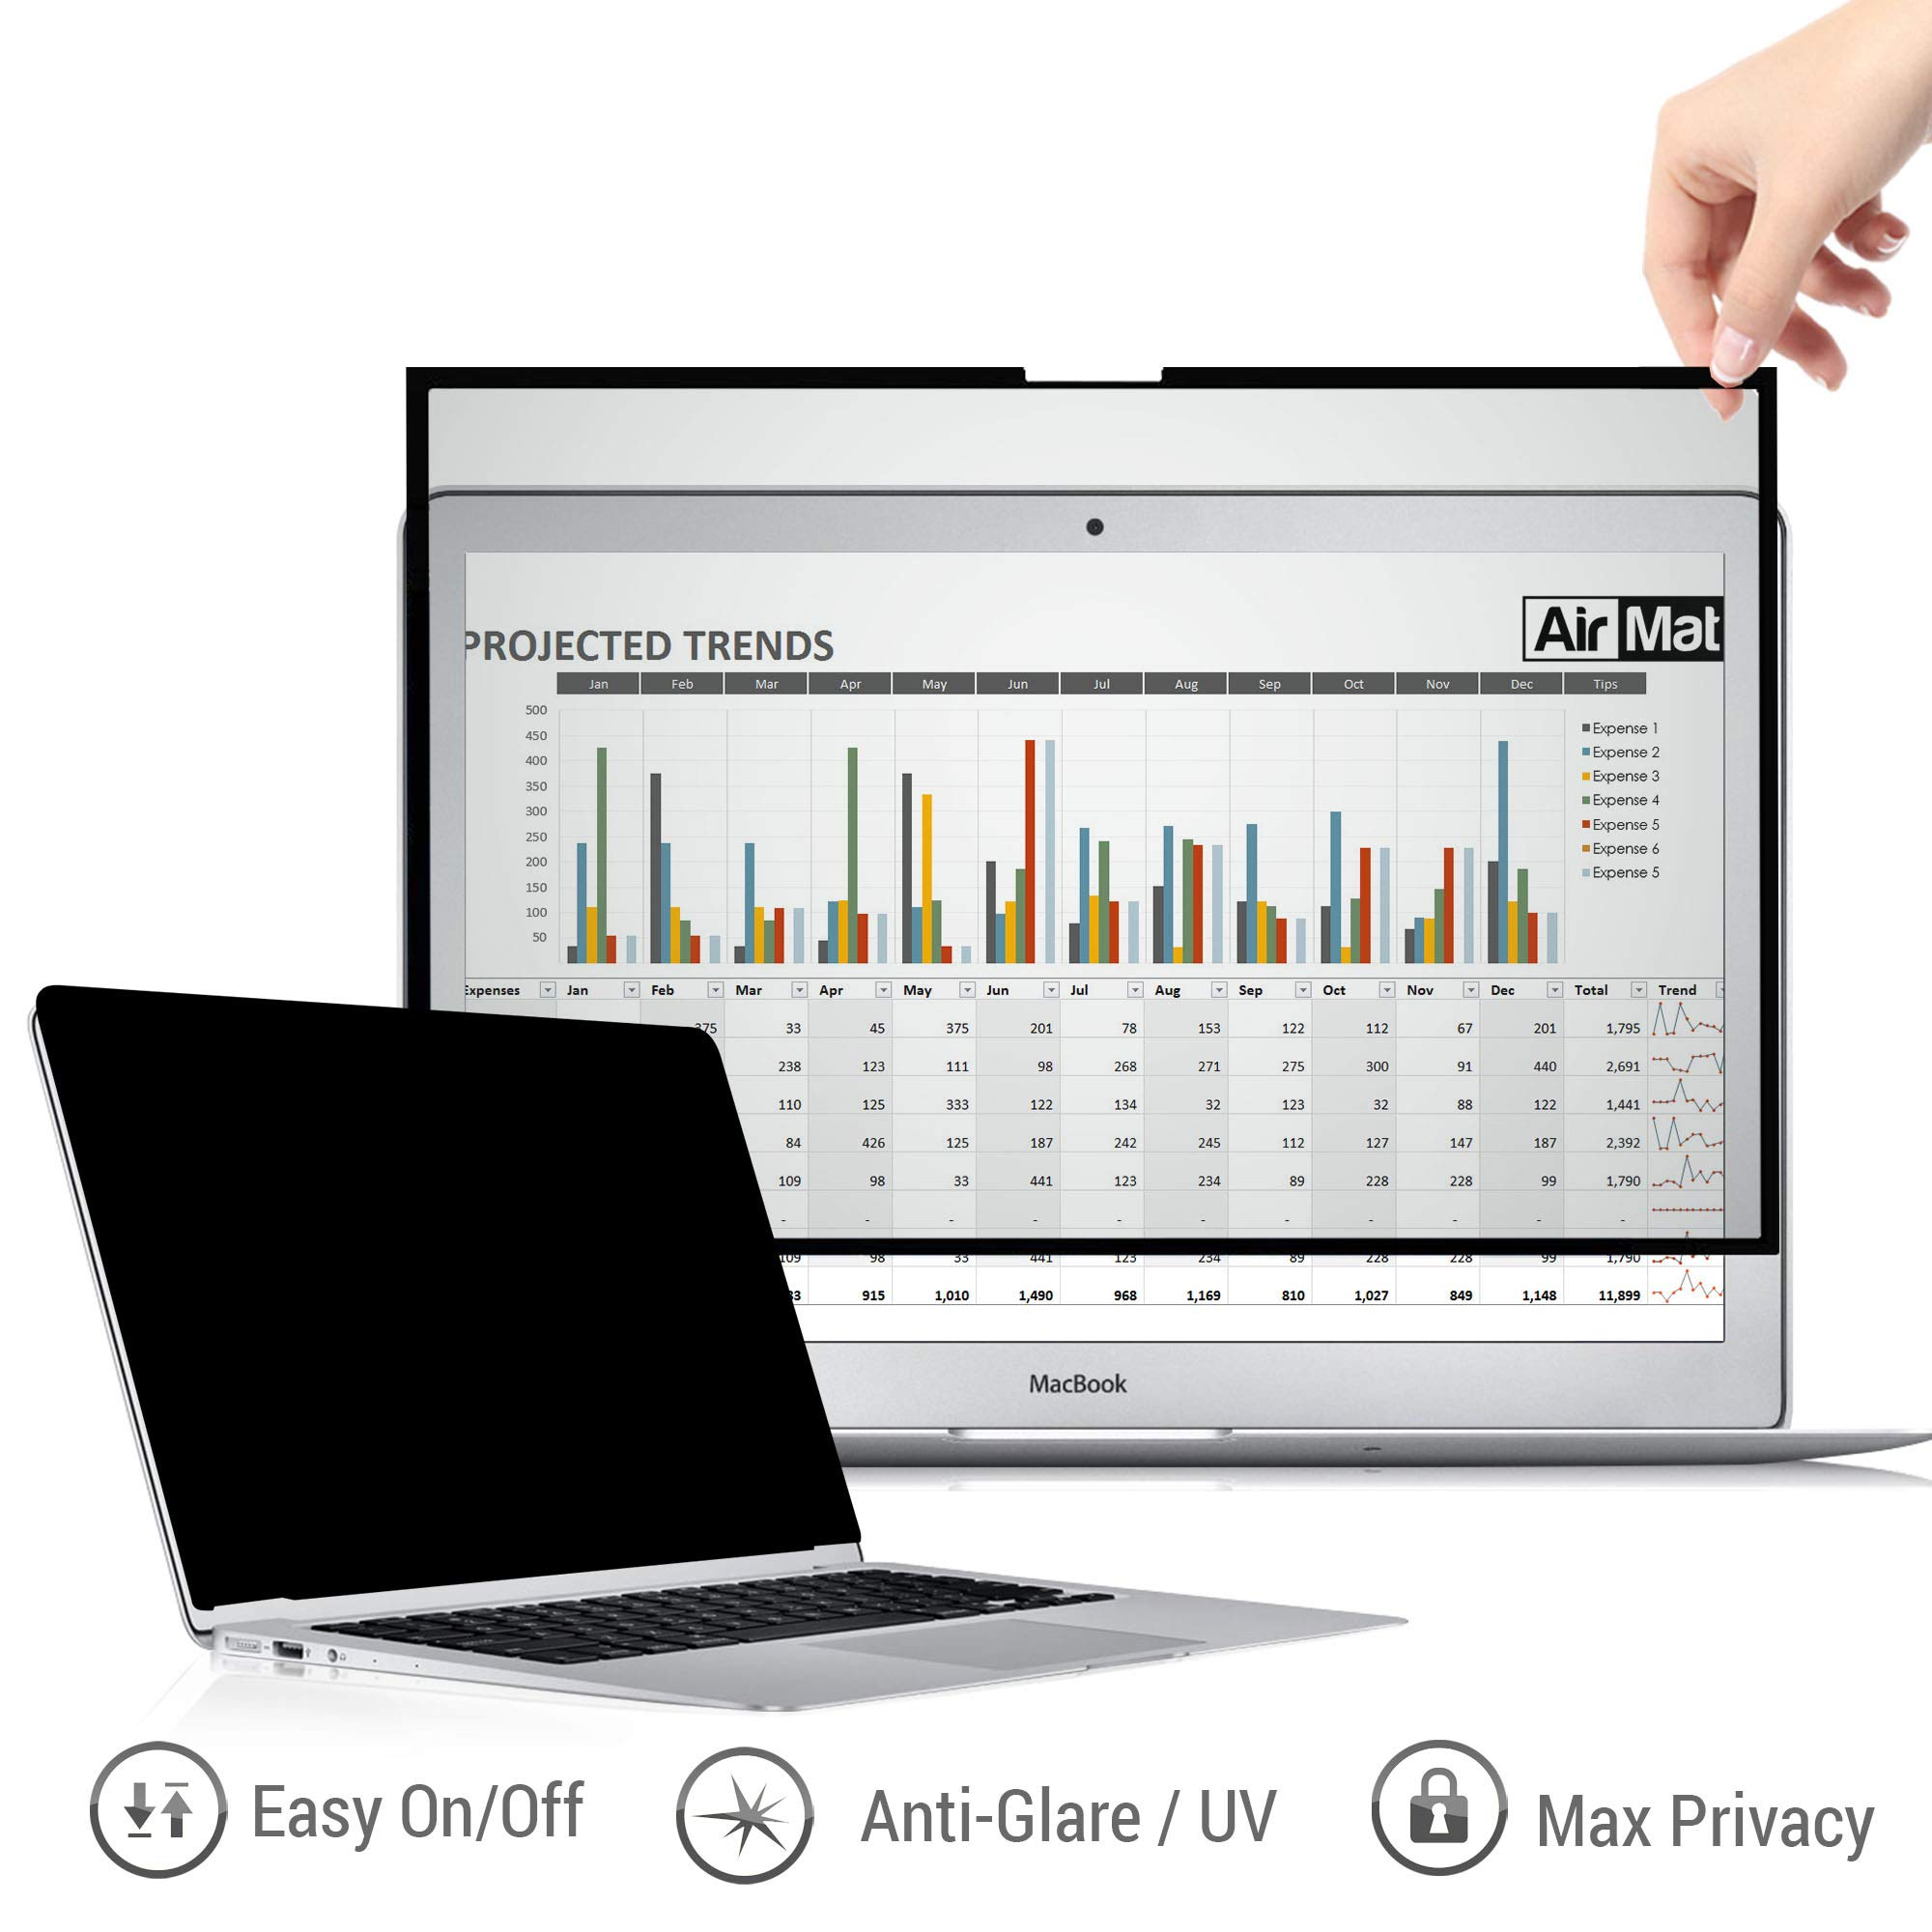 13 inch Removable MacBook Privacy Screen Filter for All 13'' Apple MacBook Models - Air/Pro/Retina/Touchbar - Premium Anti Glare Protector for Data Confidentiality